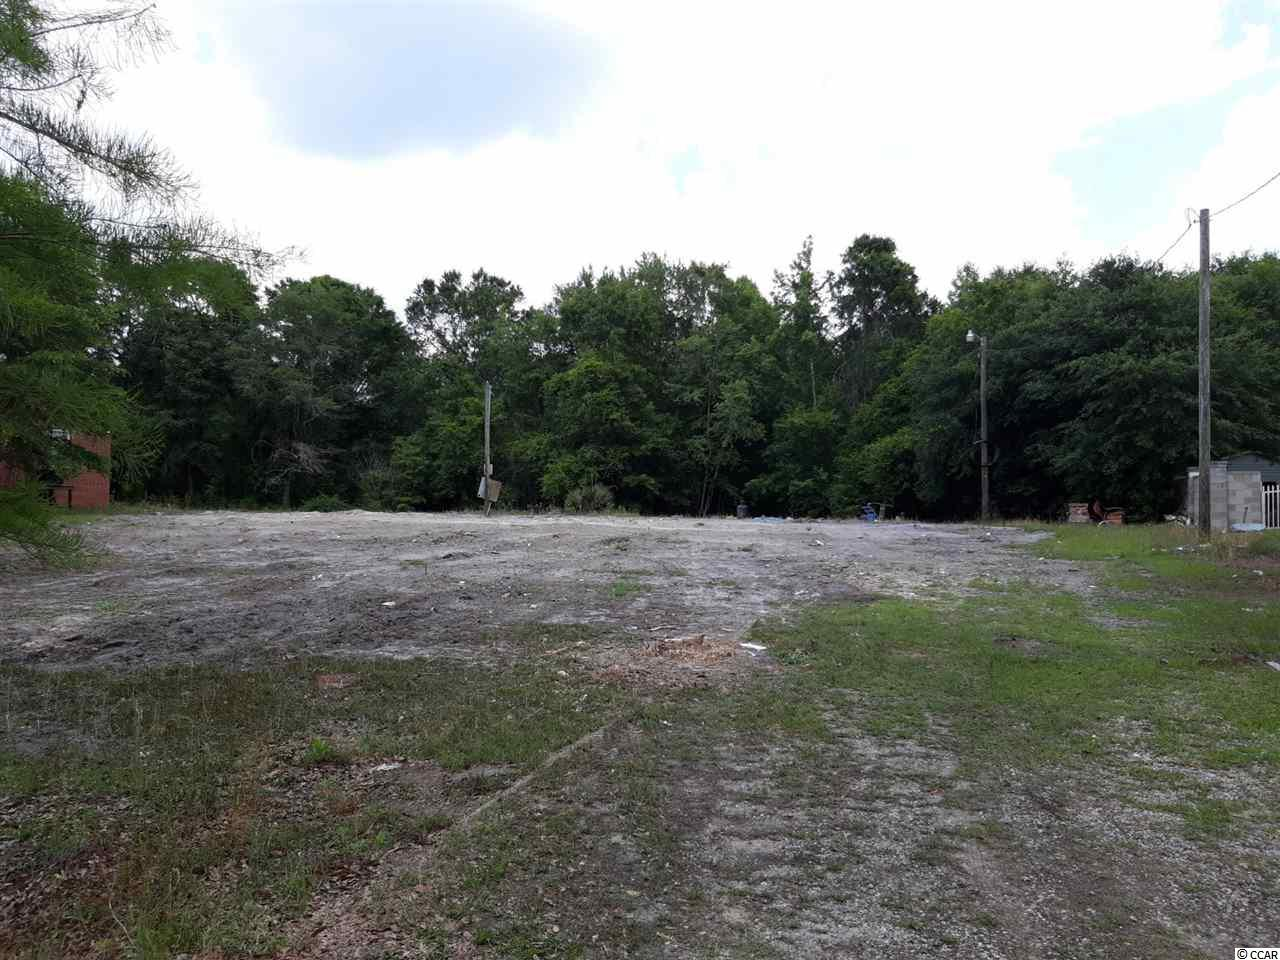 Vacant Lot. Ready to build your home or get away place. Located less than a mile from Lees Landing and on a cul-de-sac. Grand Strand Water is already on the lot. Electric on a pole at lot. Great to build, put a camper, or have as a fun weekend place to play.